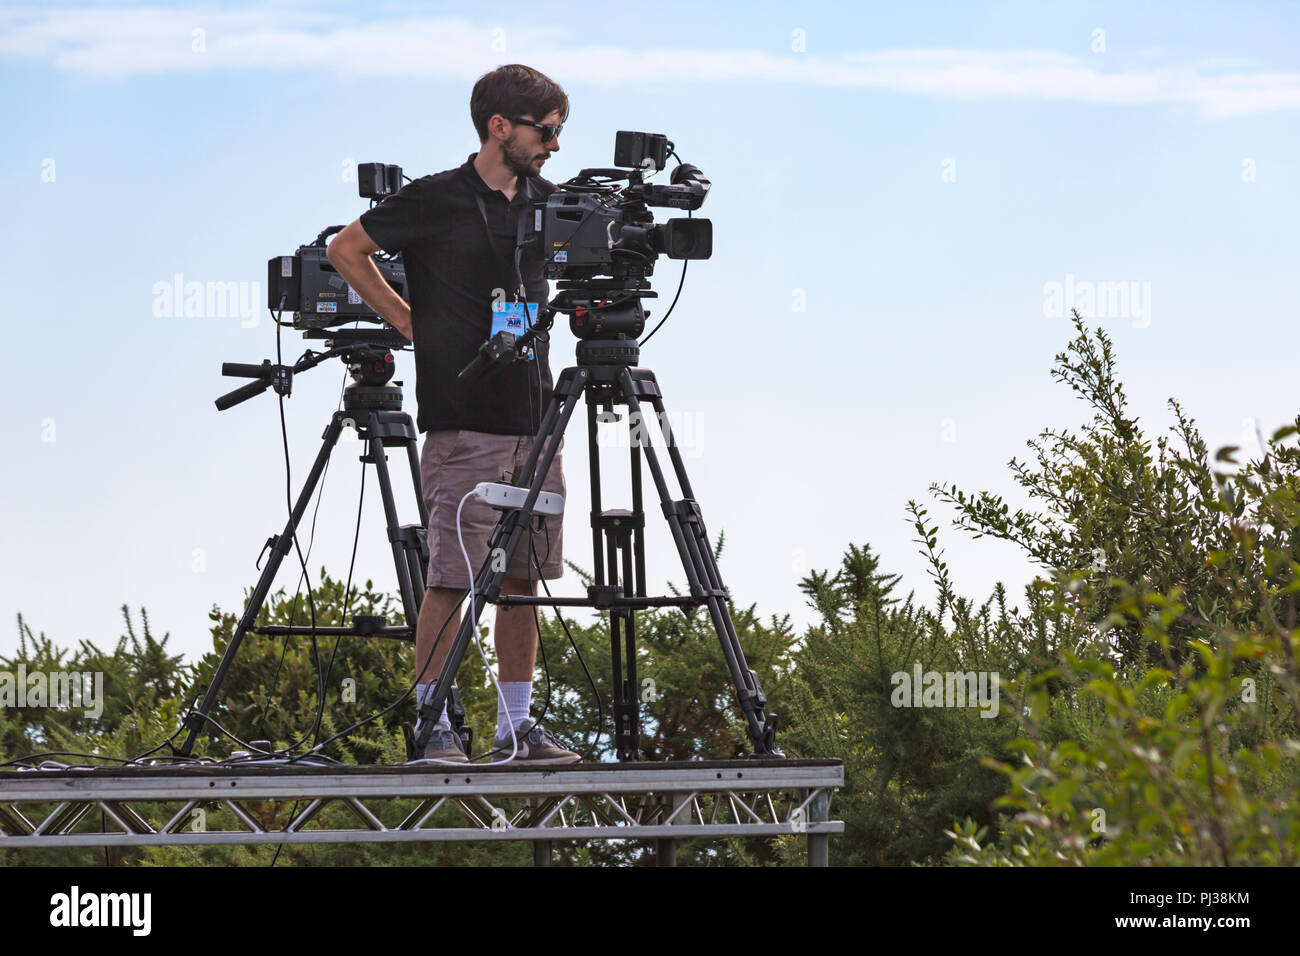 TV camera man with cameras at Bournemouth Air Festival, Bournemouth, Dorset UK in September - Stock Image